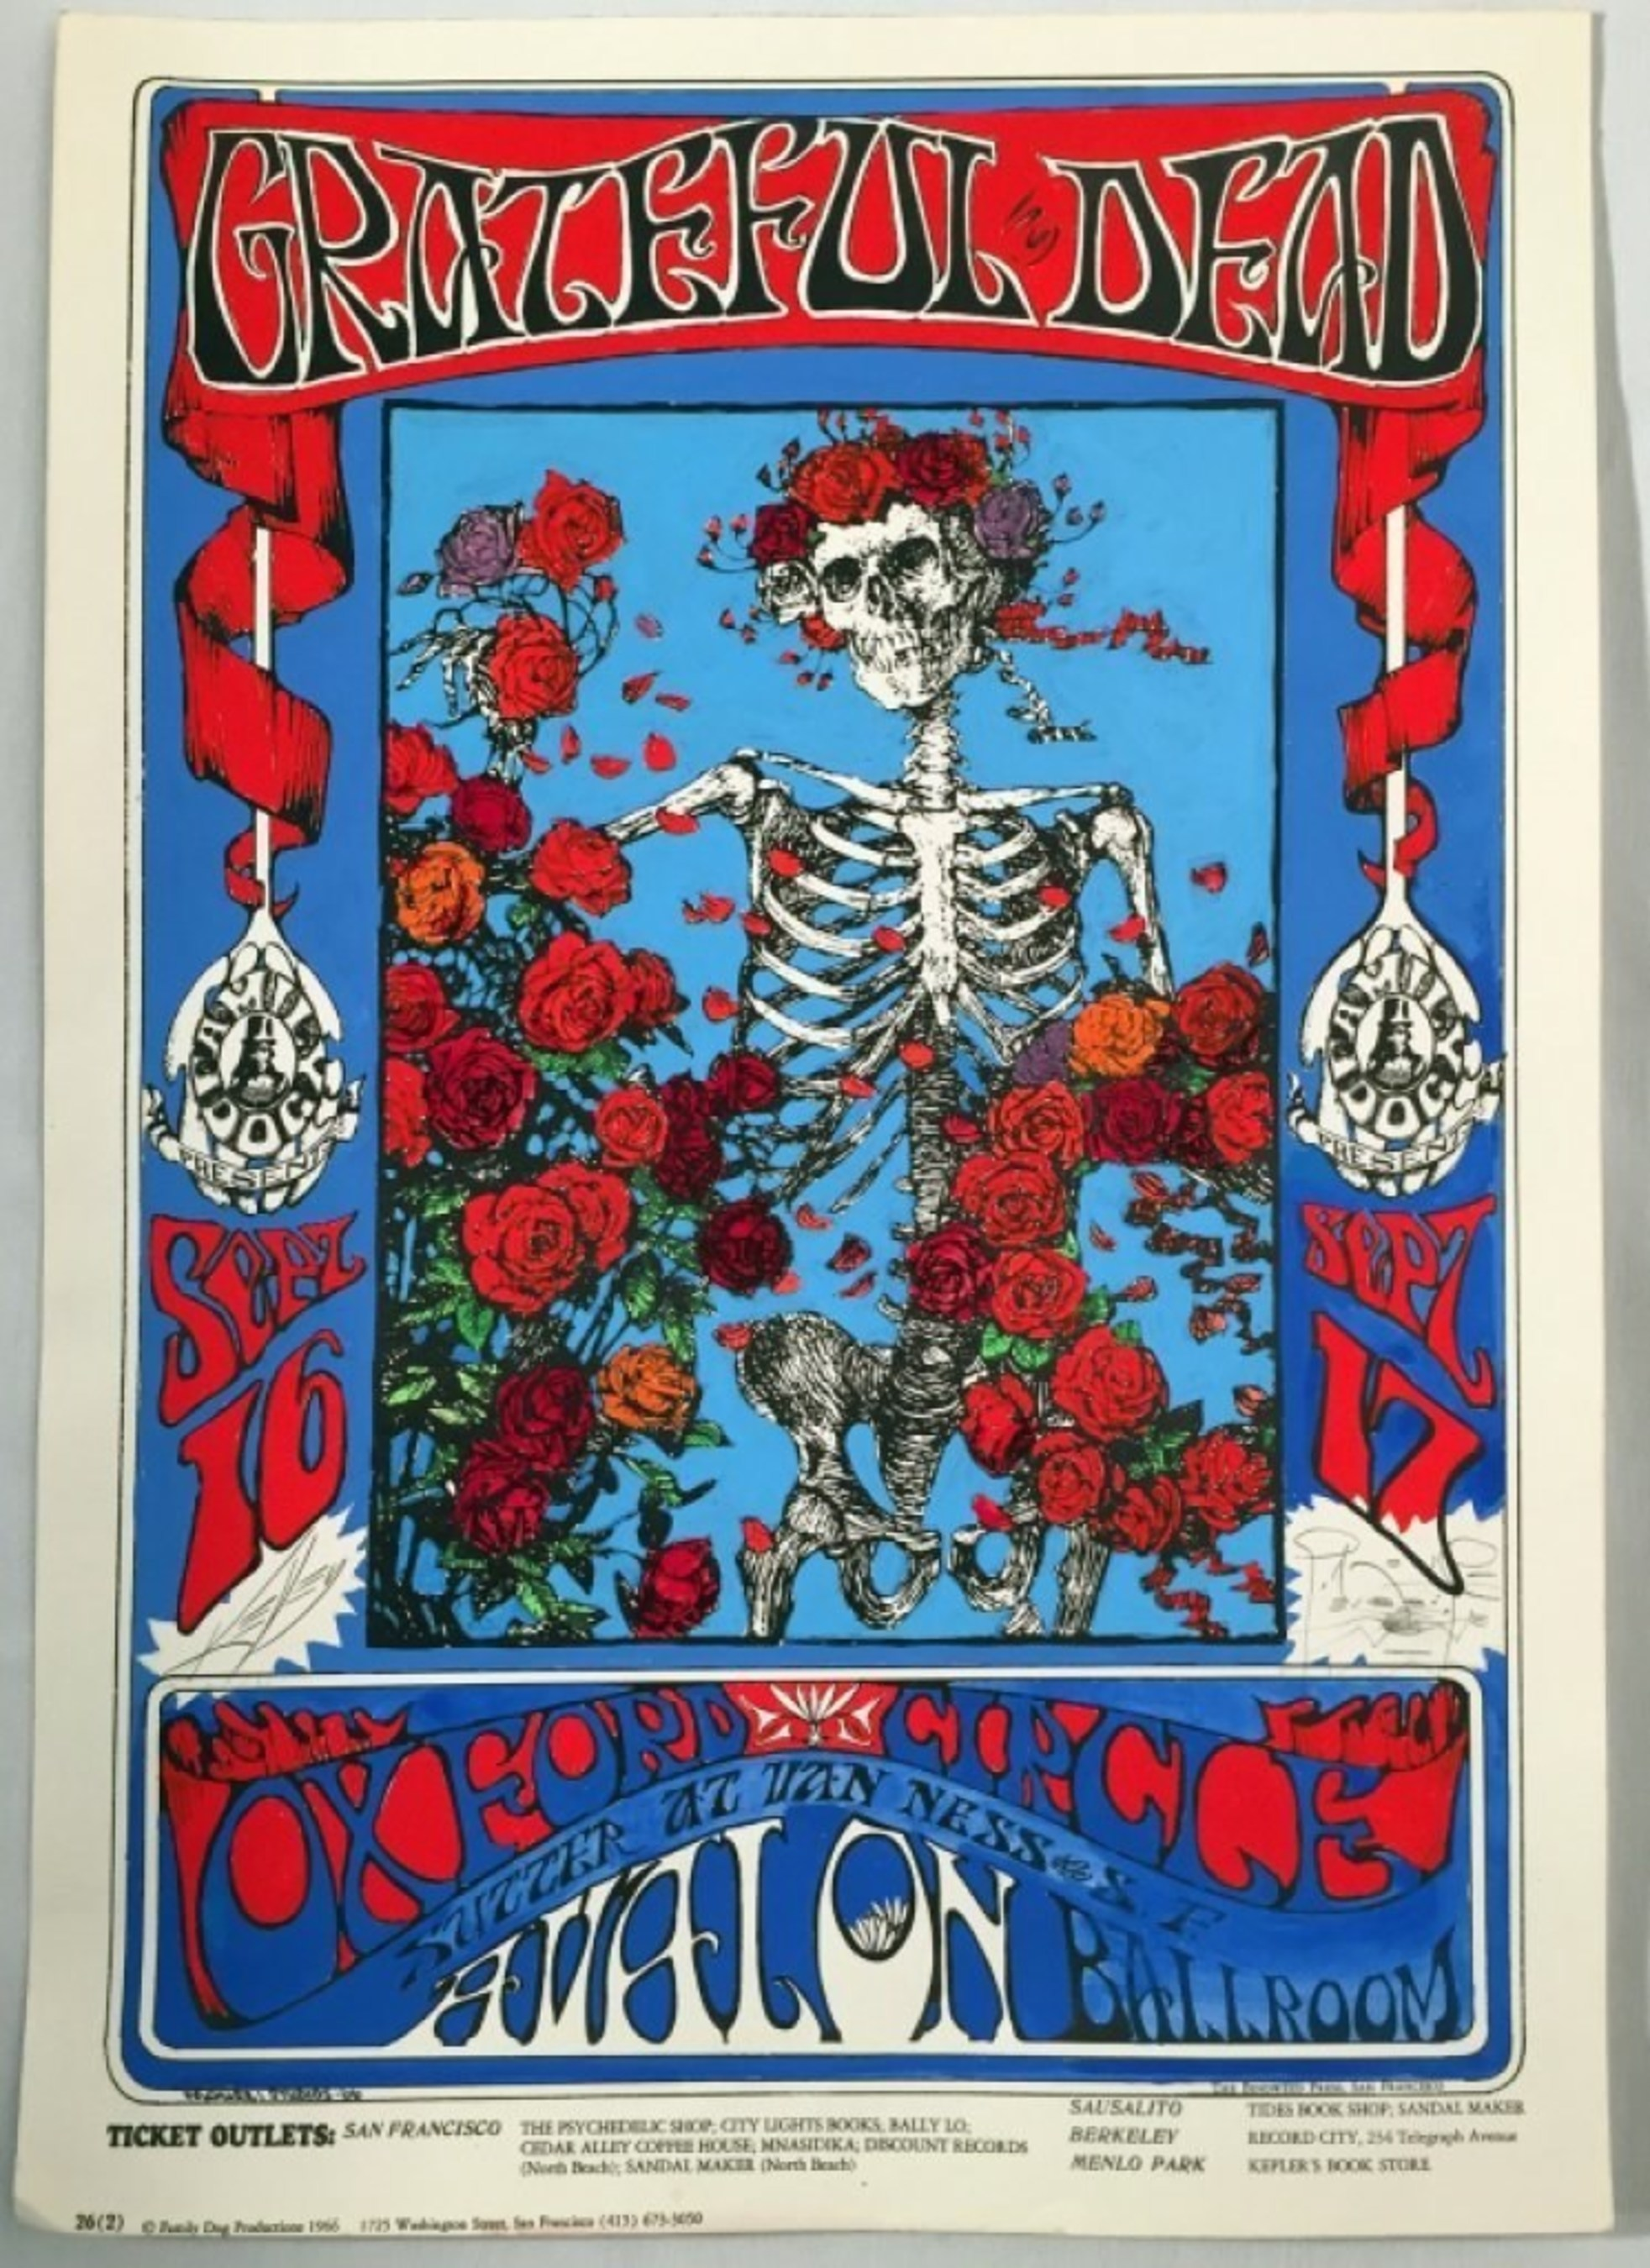 Rare Memorabilia from Rock n' Roll Legends The Grateful Dead to be Auctioned on Proxibid